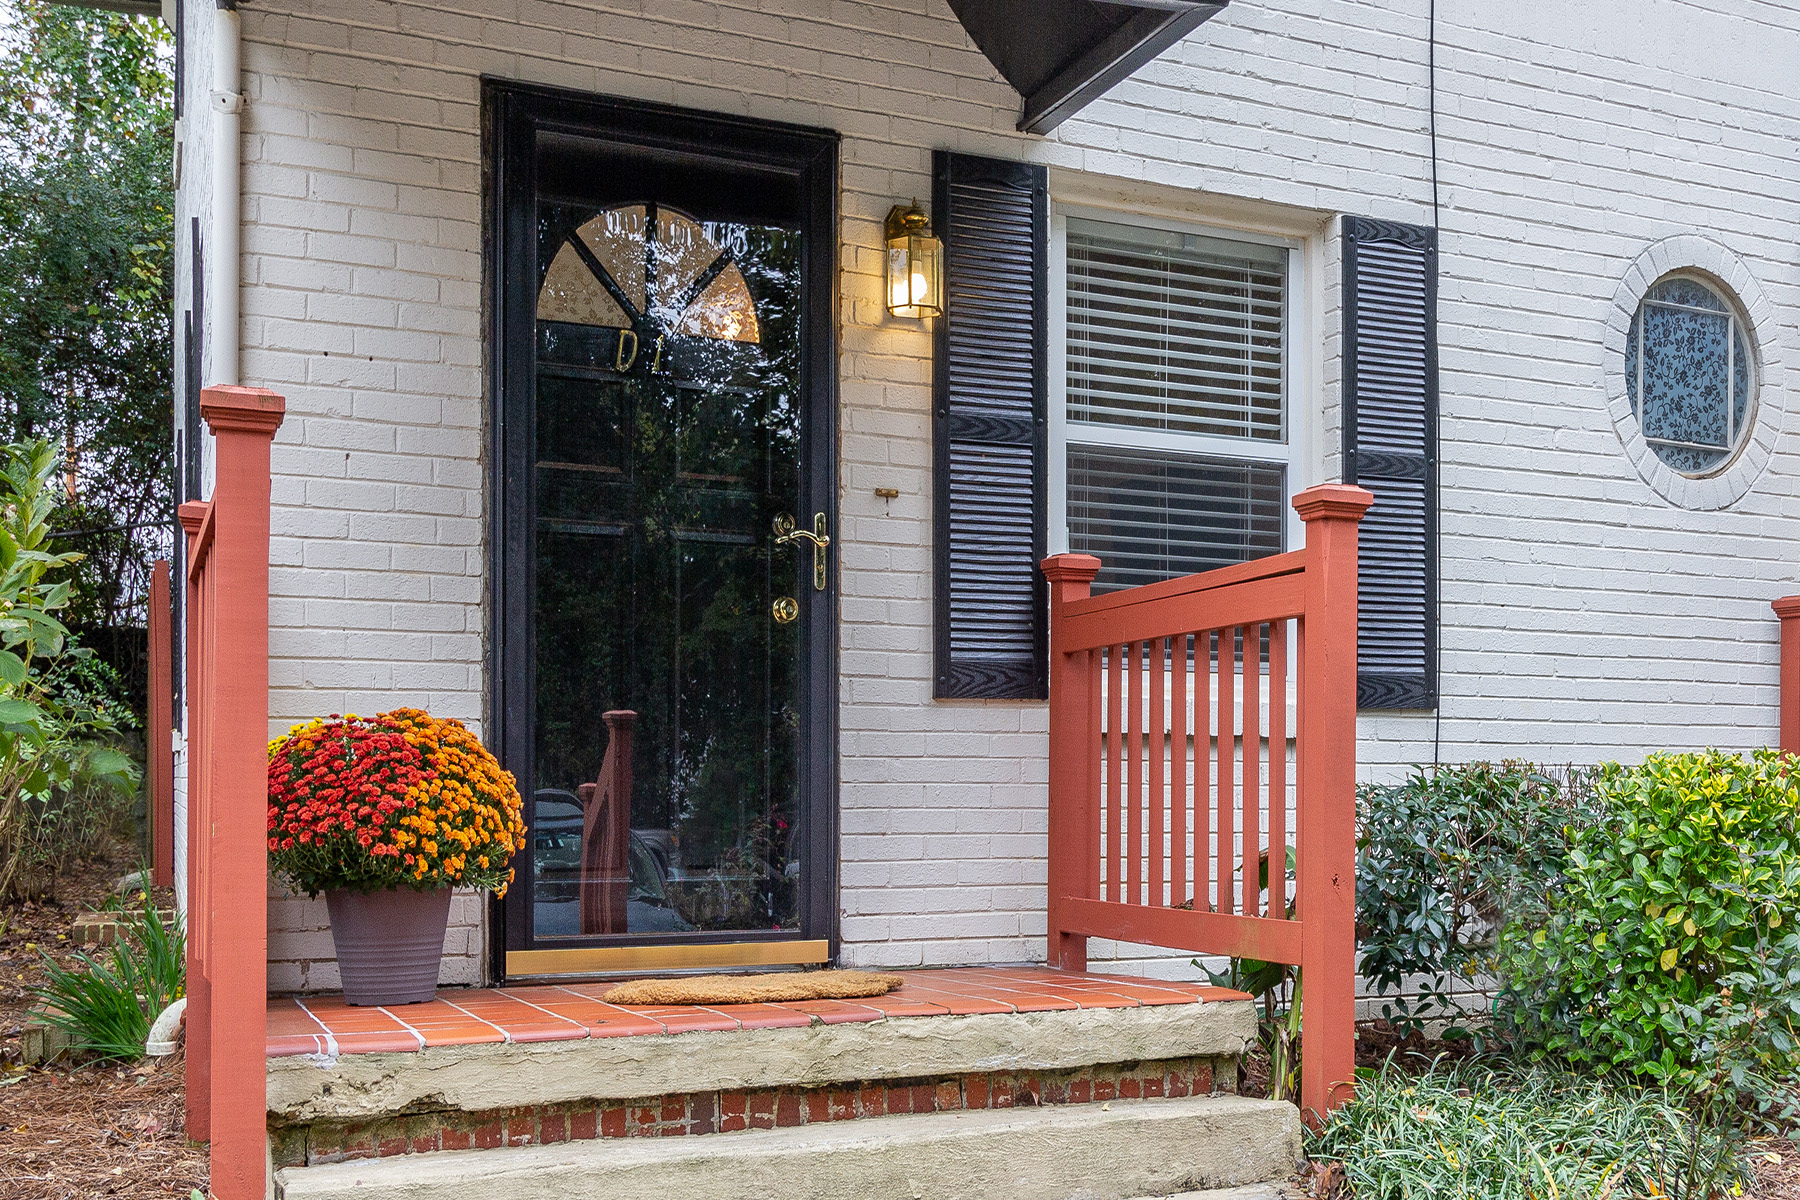 Townhouse for Sale at Emory Heights Townhome with Private Fenced Back Patio 2477 Decatur Rd D1 Decatur, Georgia 30033 United States